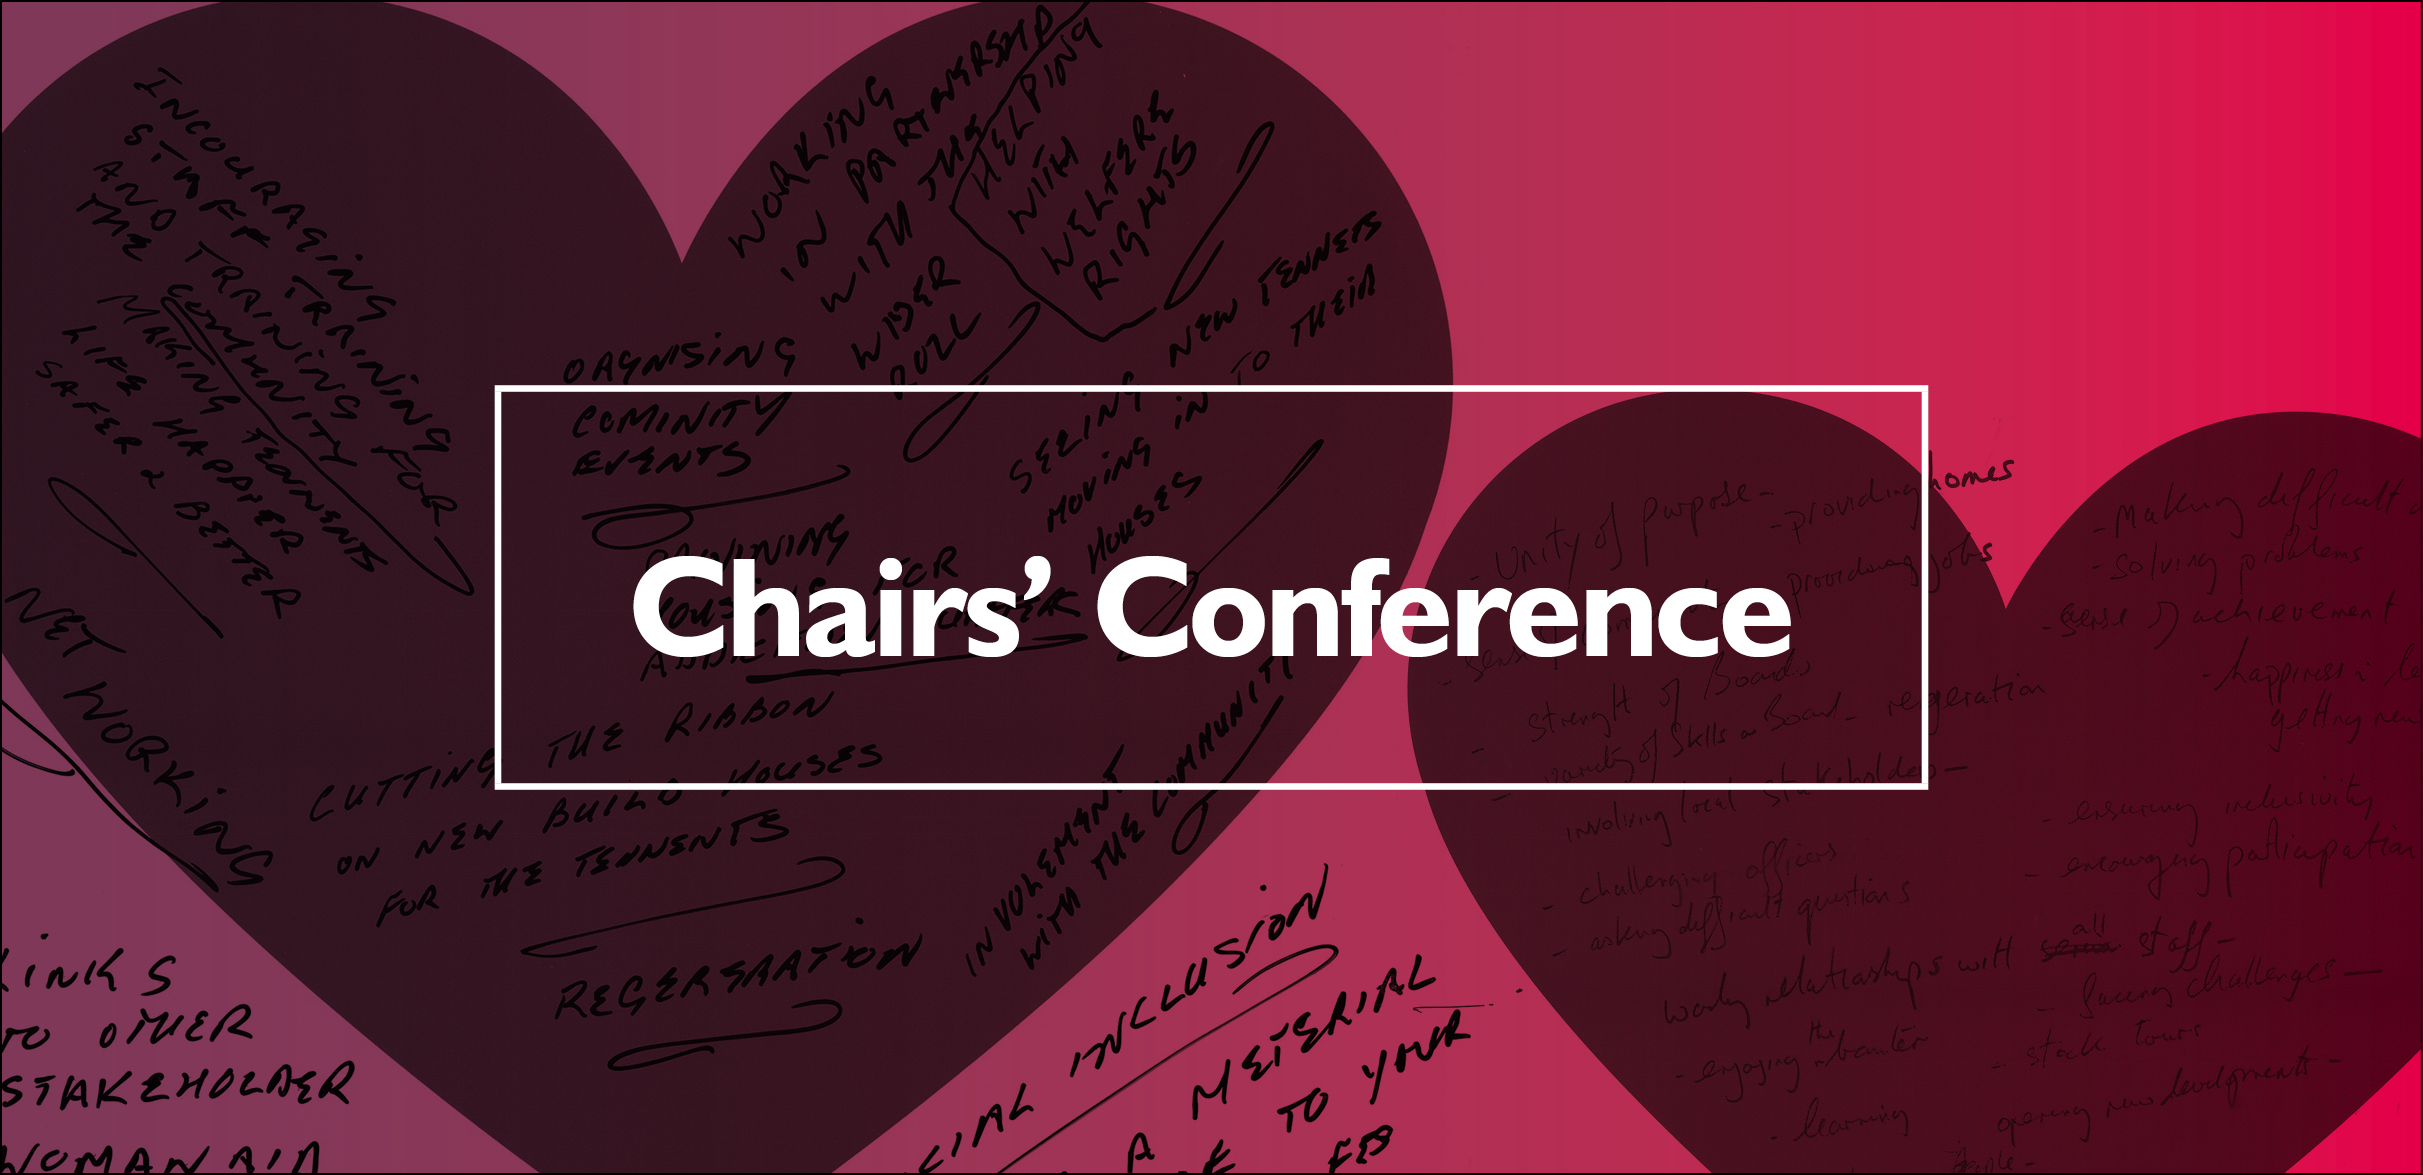 Chairs' Conference to discuss social value and inclusive living image